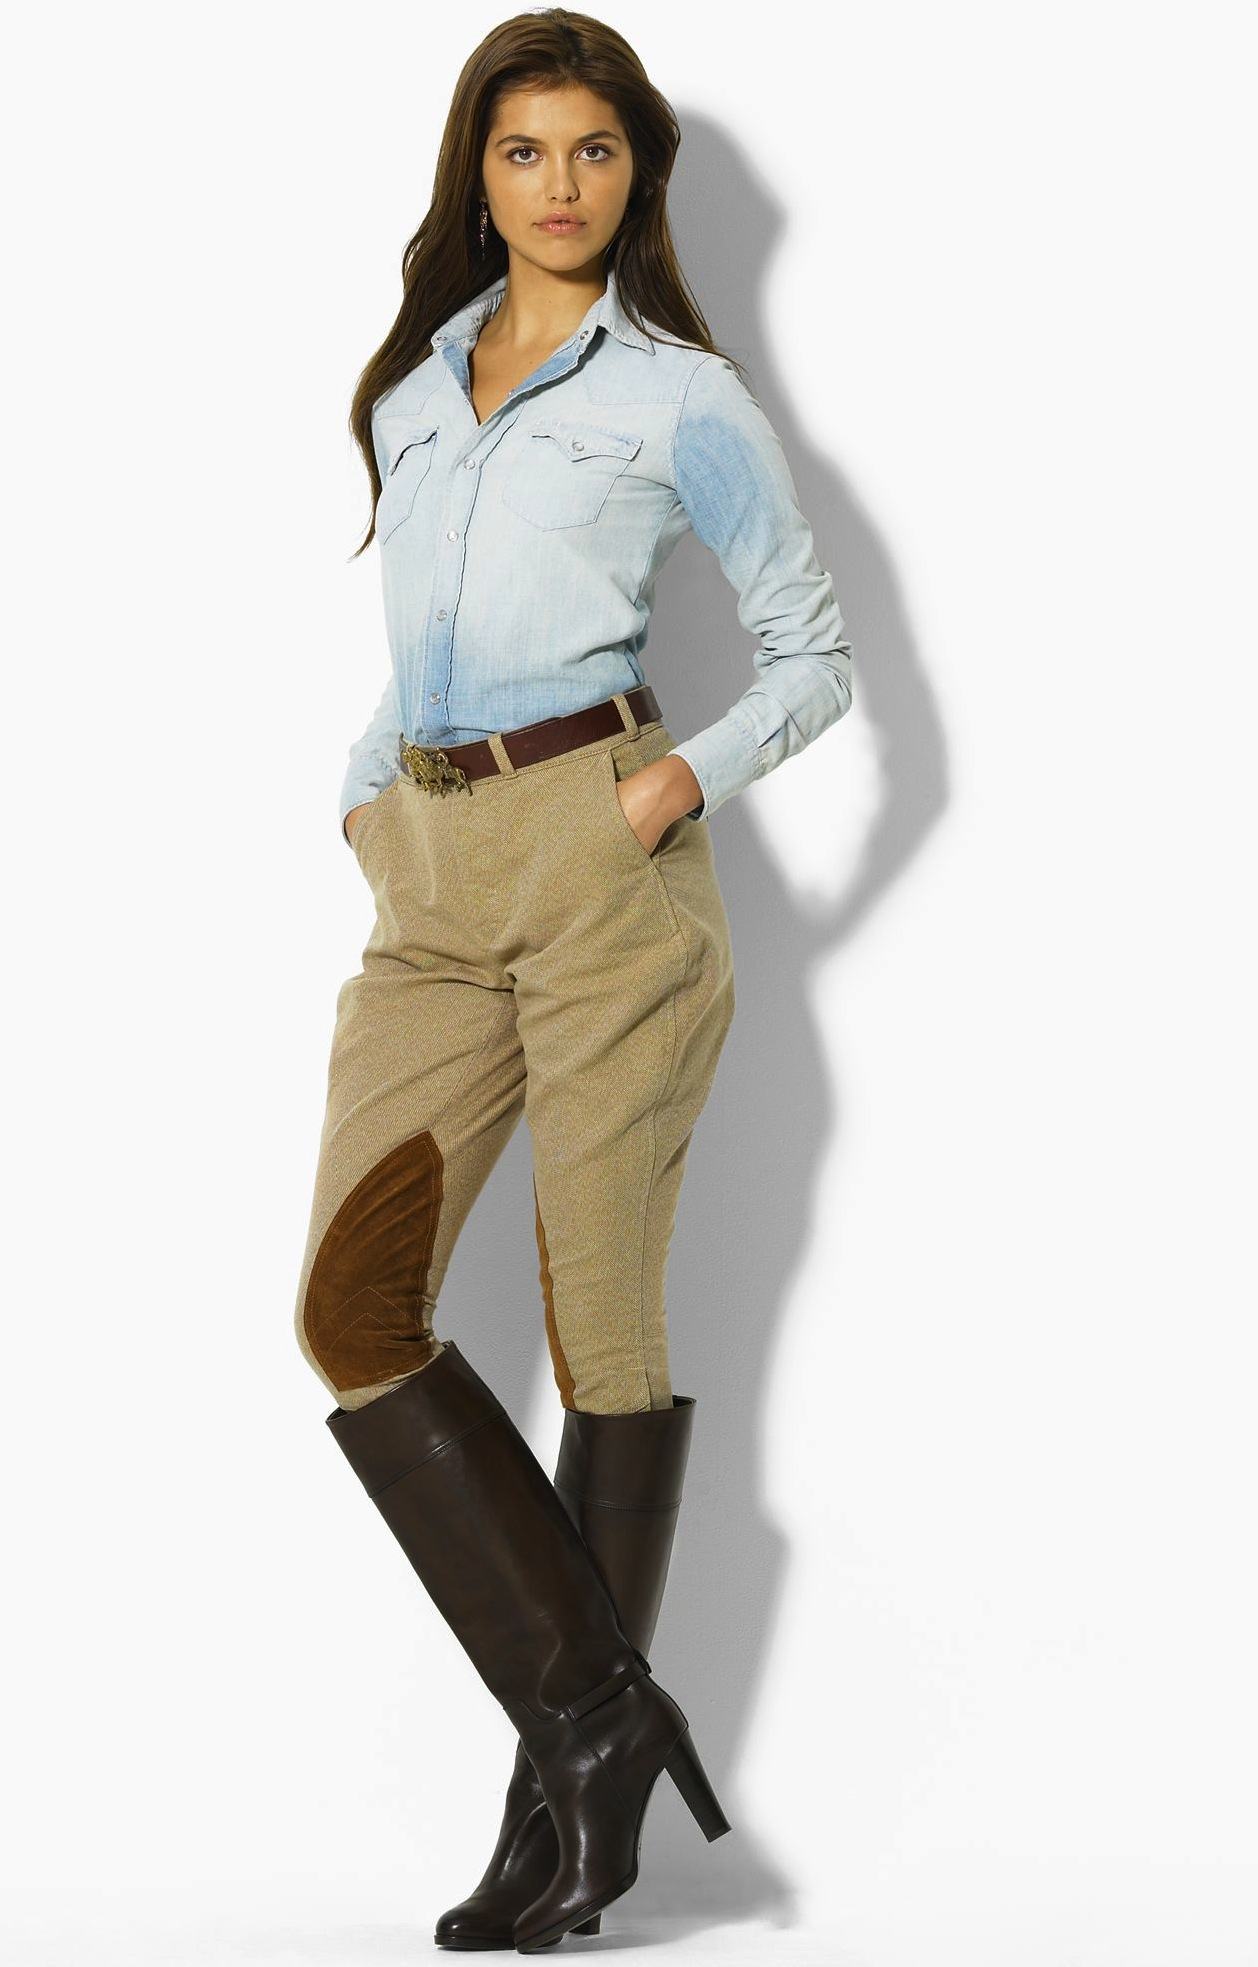 Horse Riding Shoes For Women